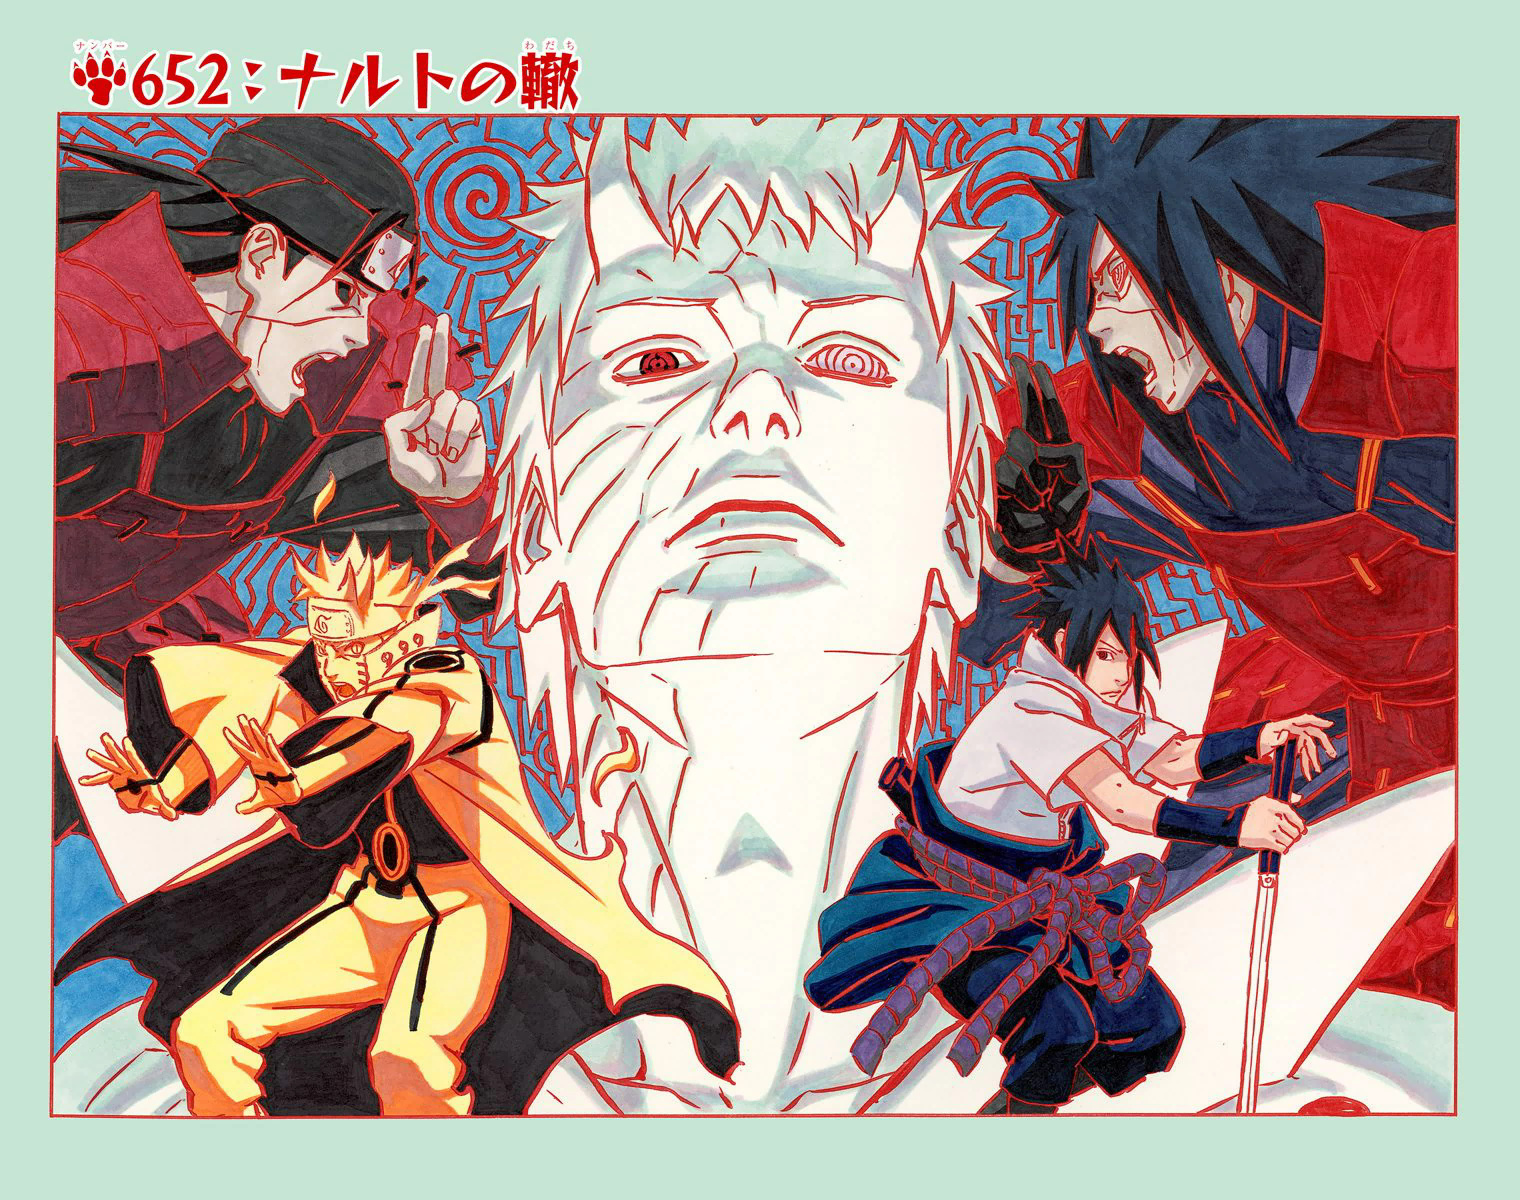 File:Chapter652.png